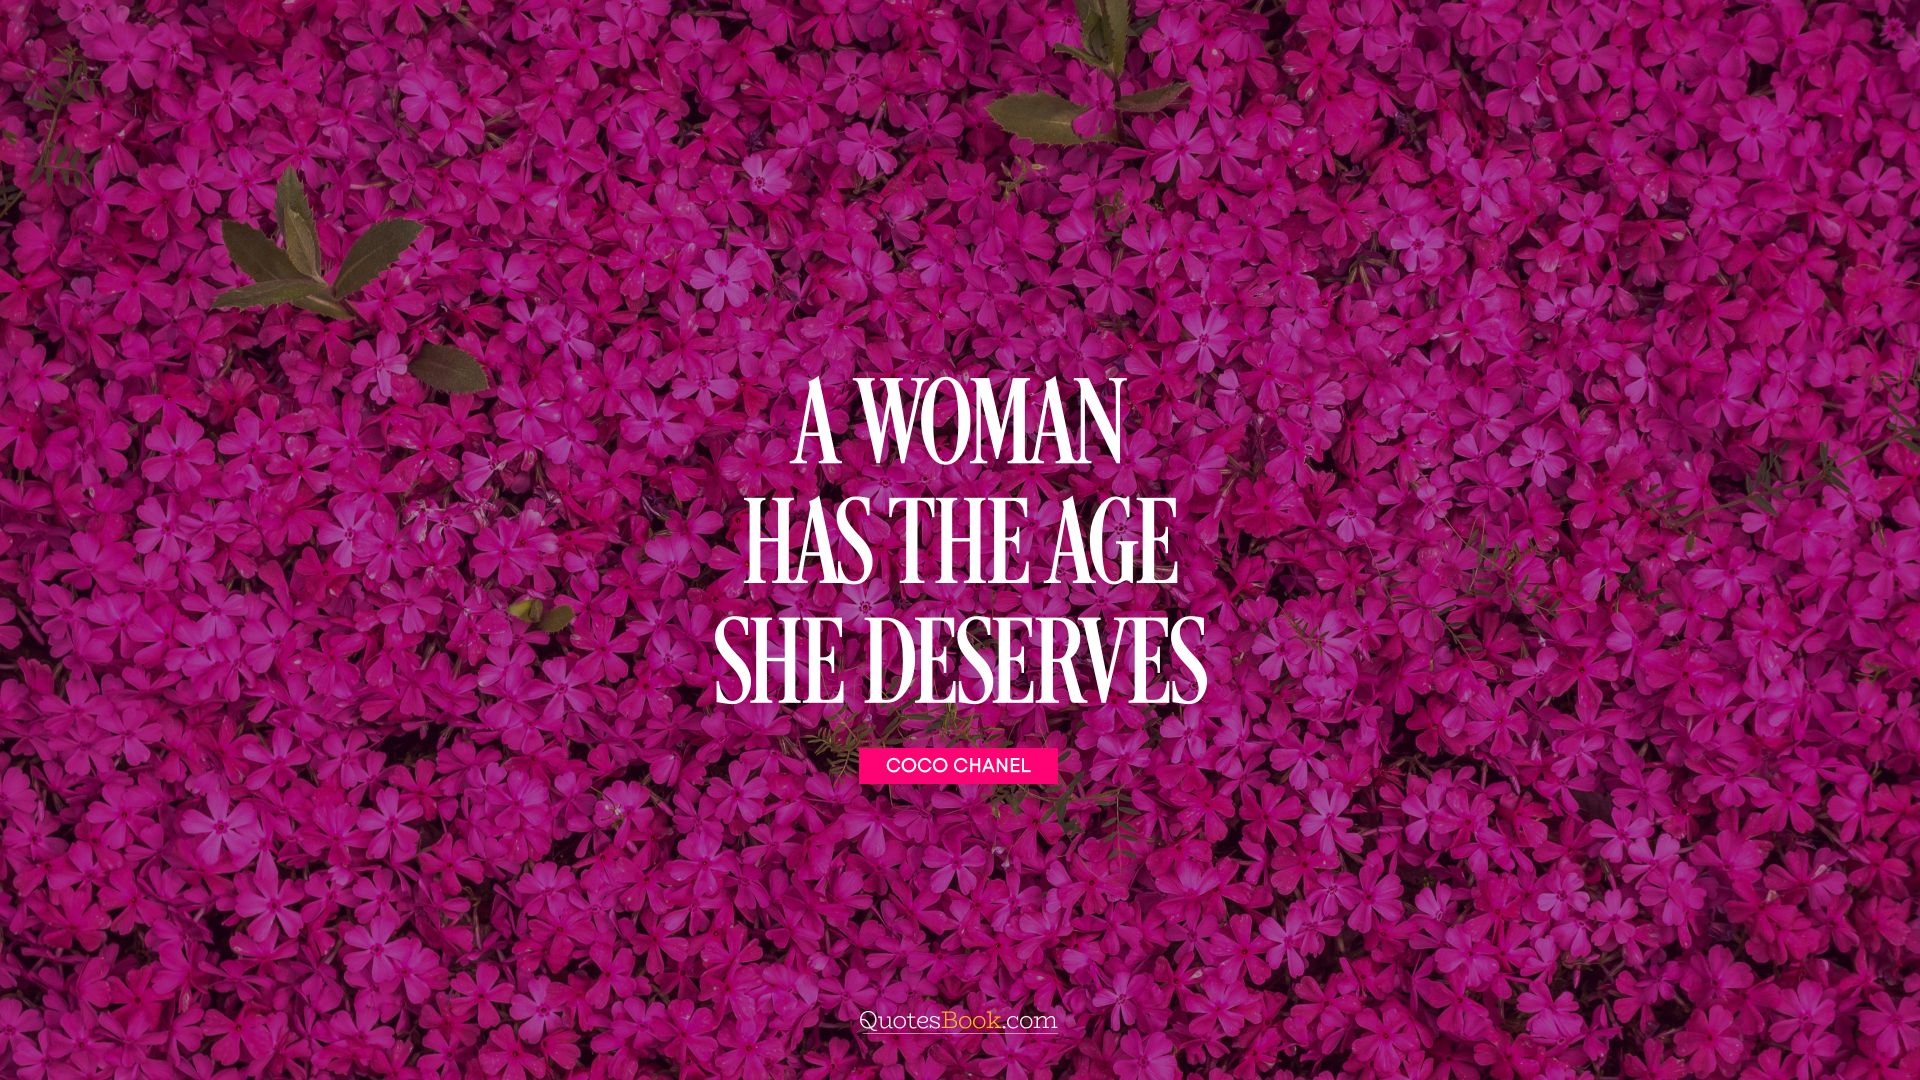 A woman has the age she deserves. - Quote by Coco Chanel